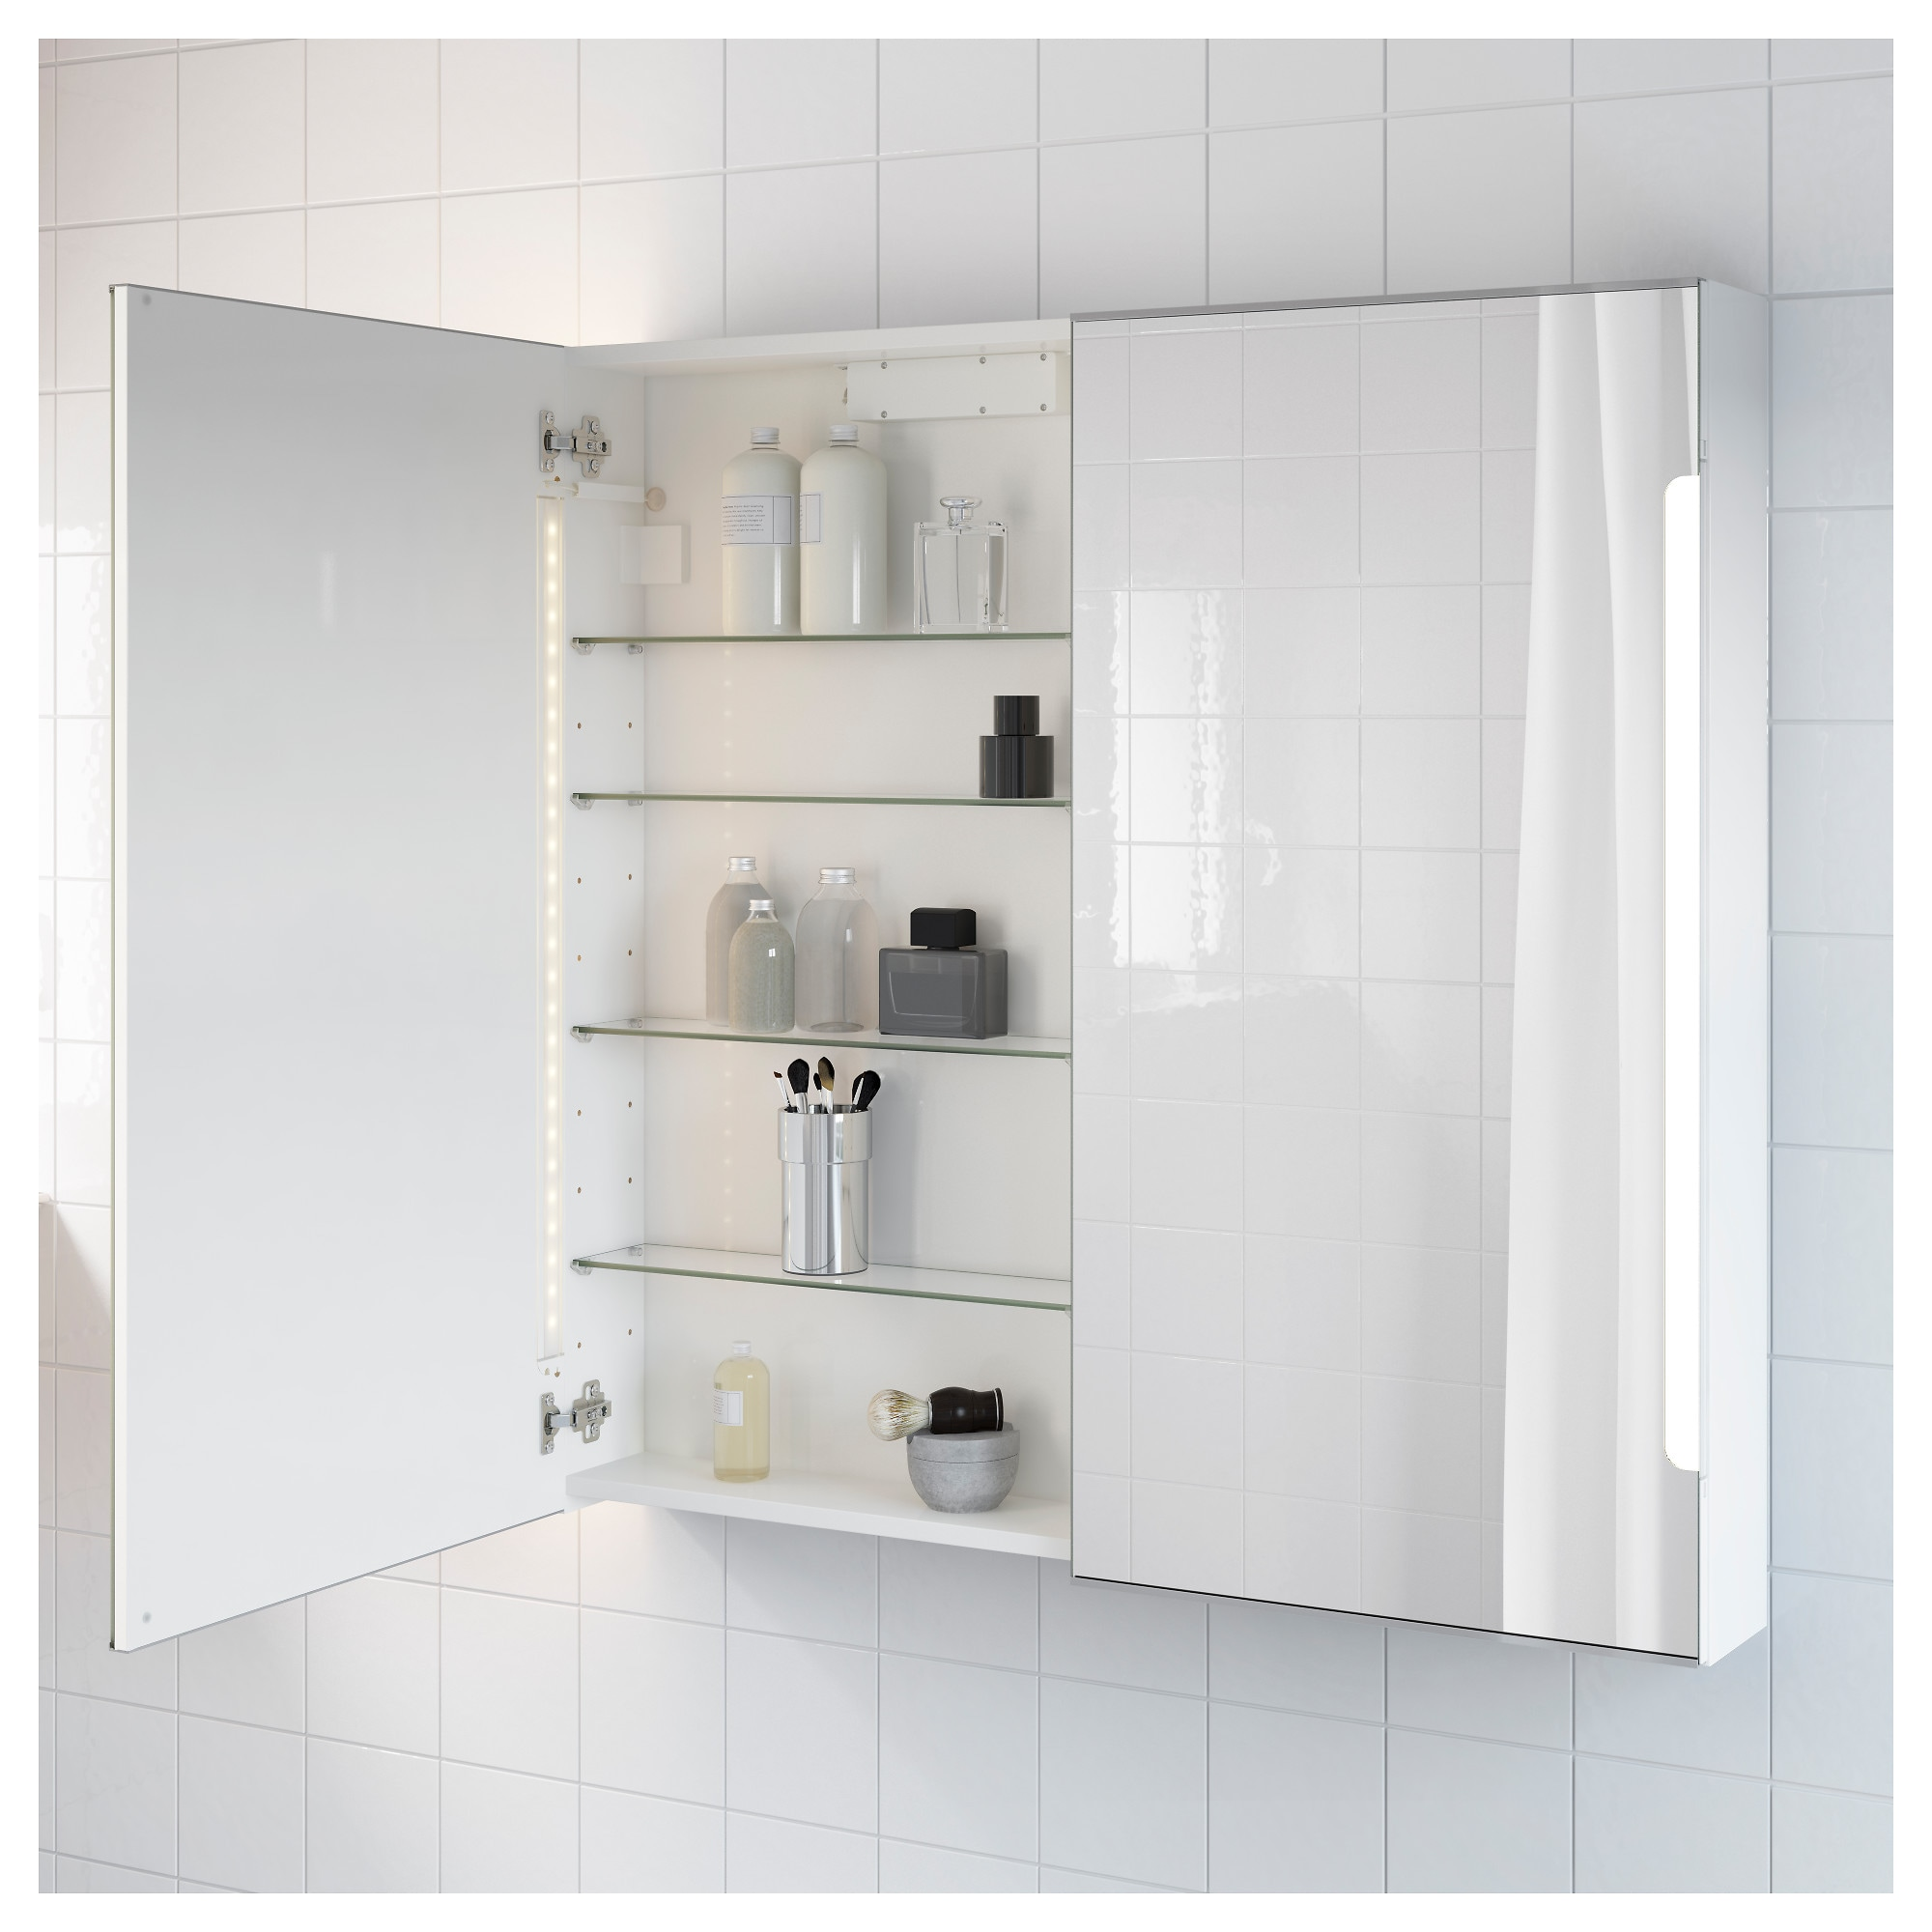 Bathroom Mirror Cabinet With Lights storjorm mirror cabinet w/2 doors & light - ikea